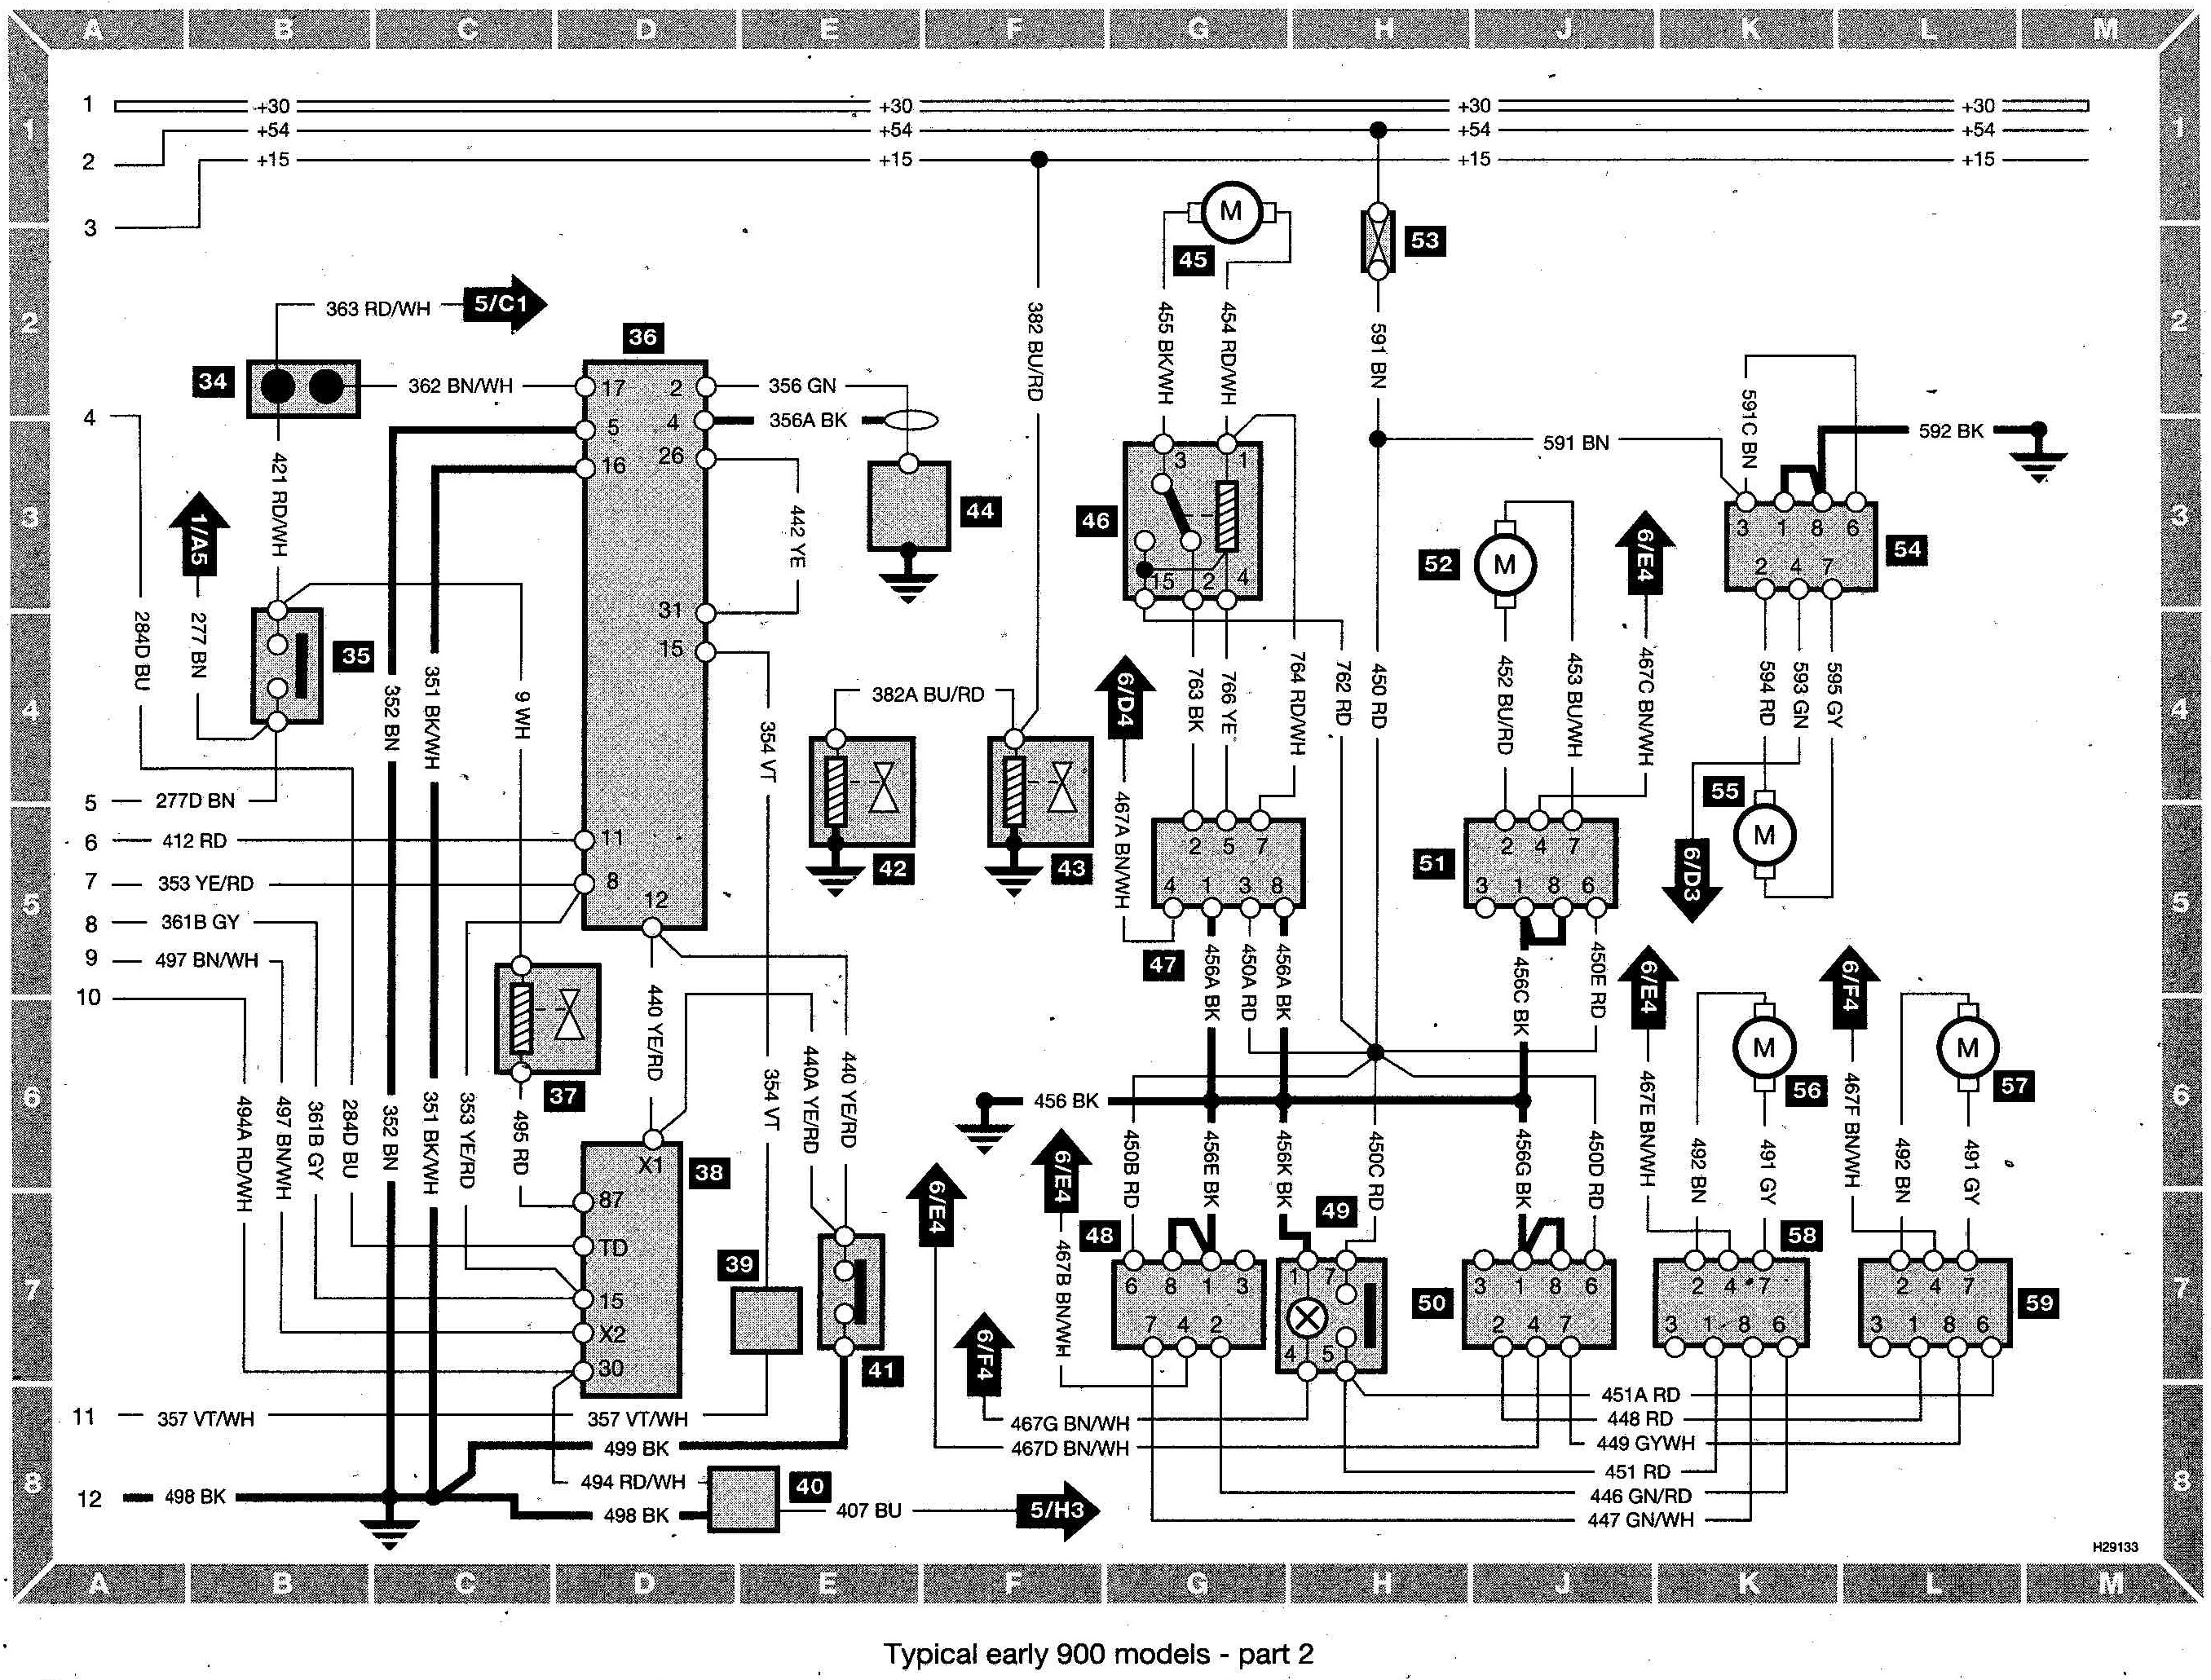 Saab 900 Wiring diagram (early models) part 2 index of saab saab 900 wiring diagram (early models) 2002 Saab 9.5 Turbo at soozxer.org